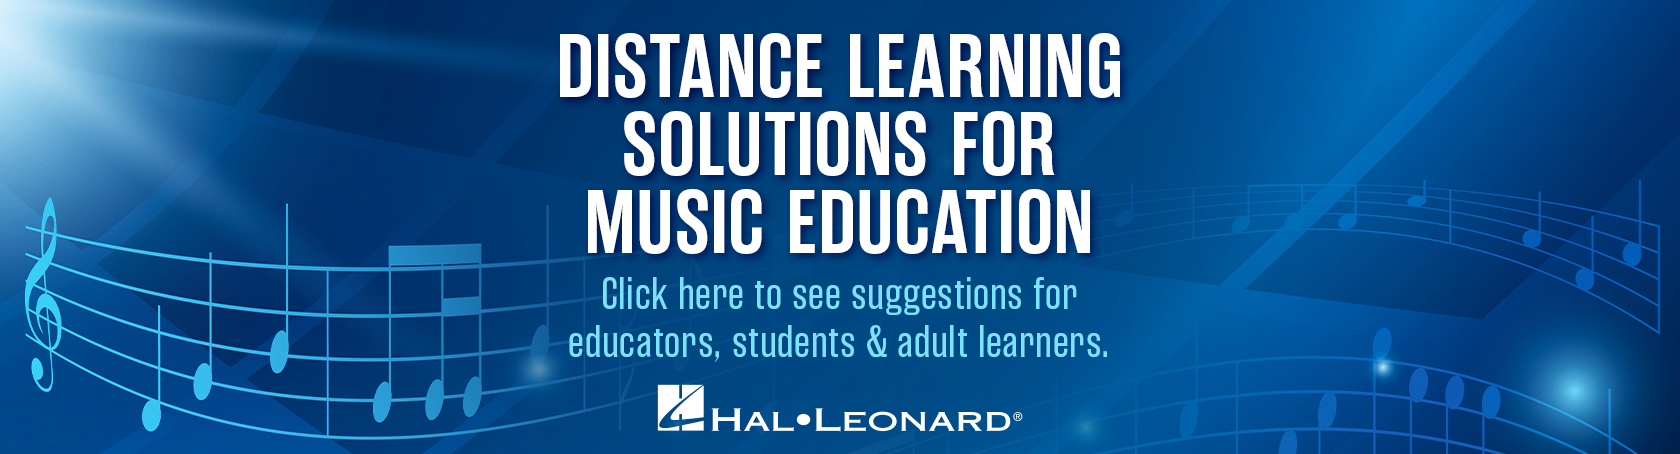 Hal Leonard Distance Learning Solutions